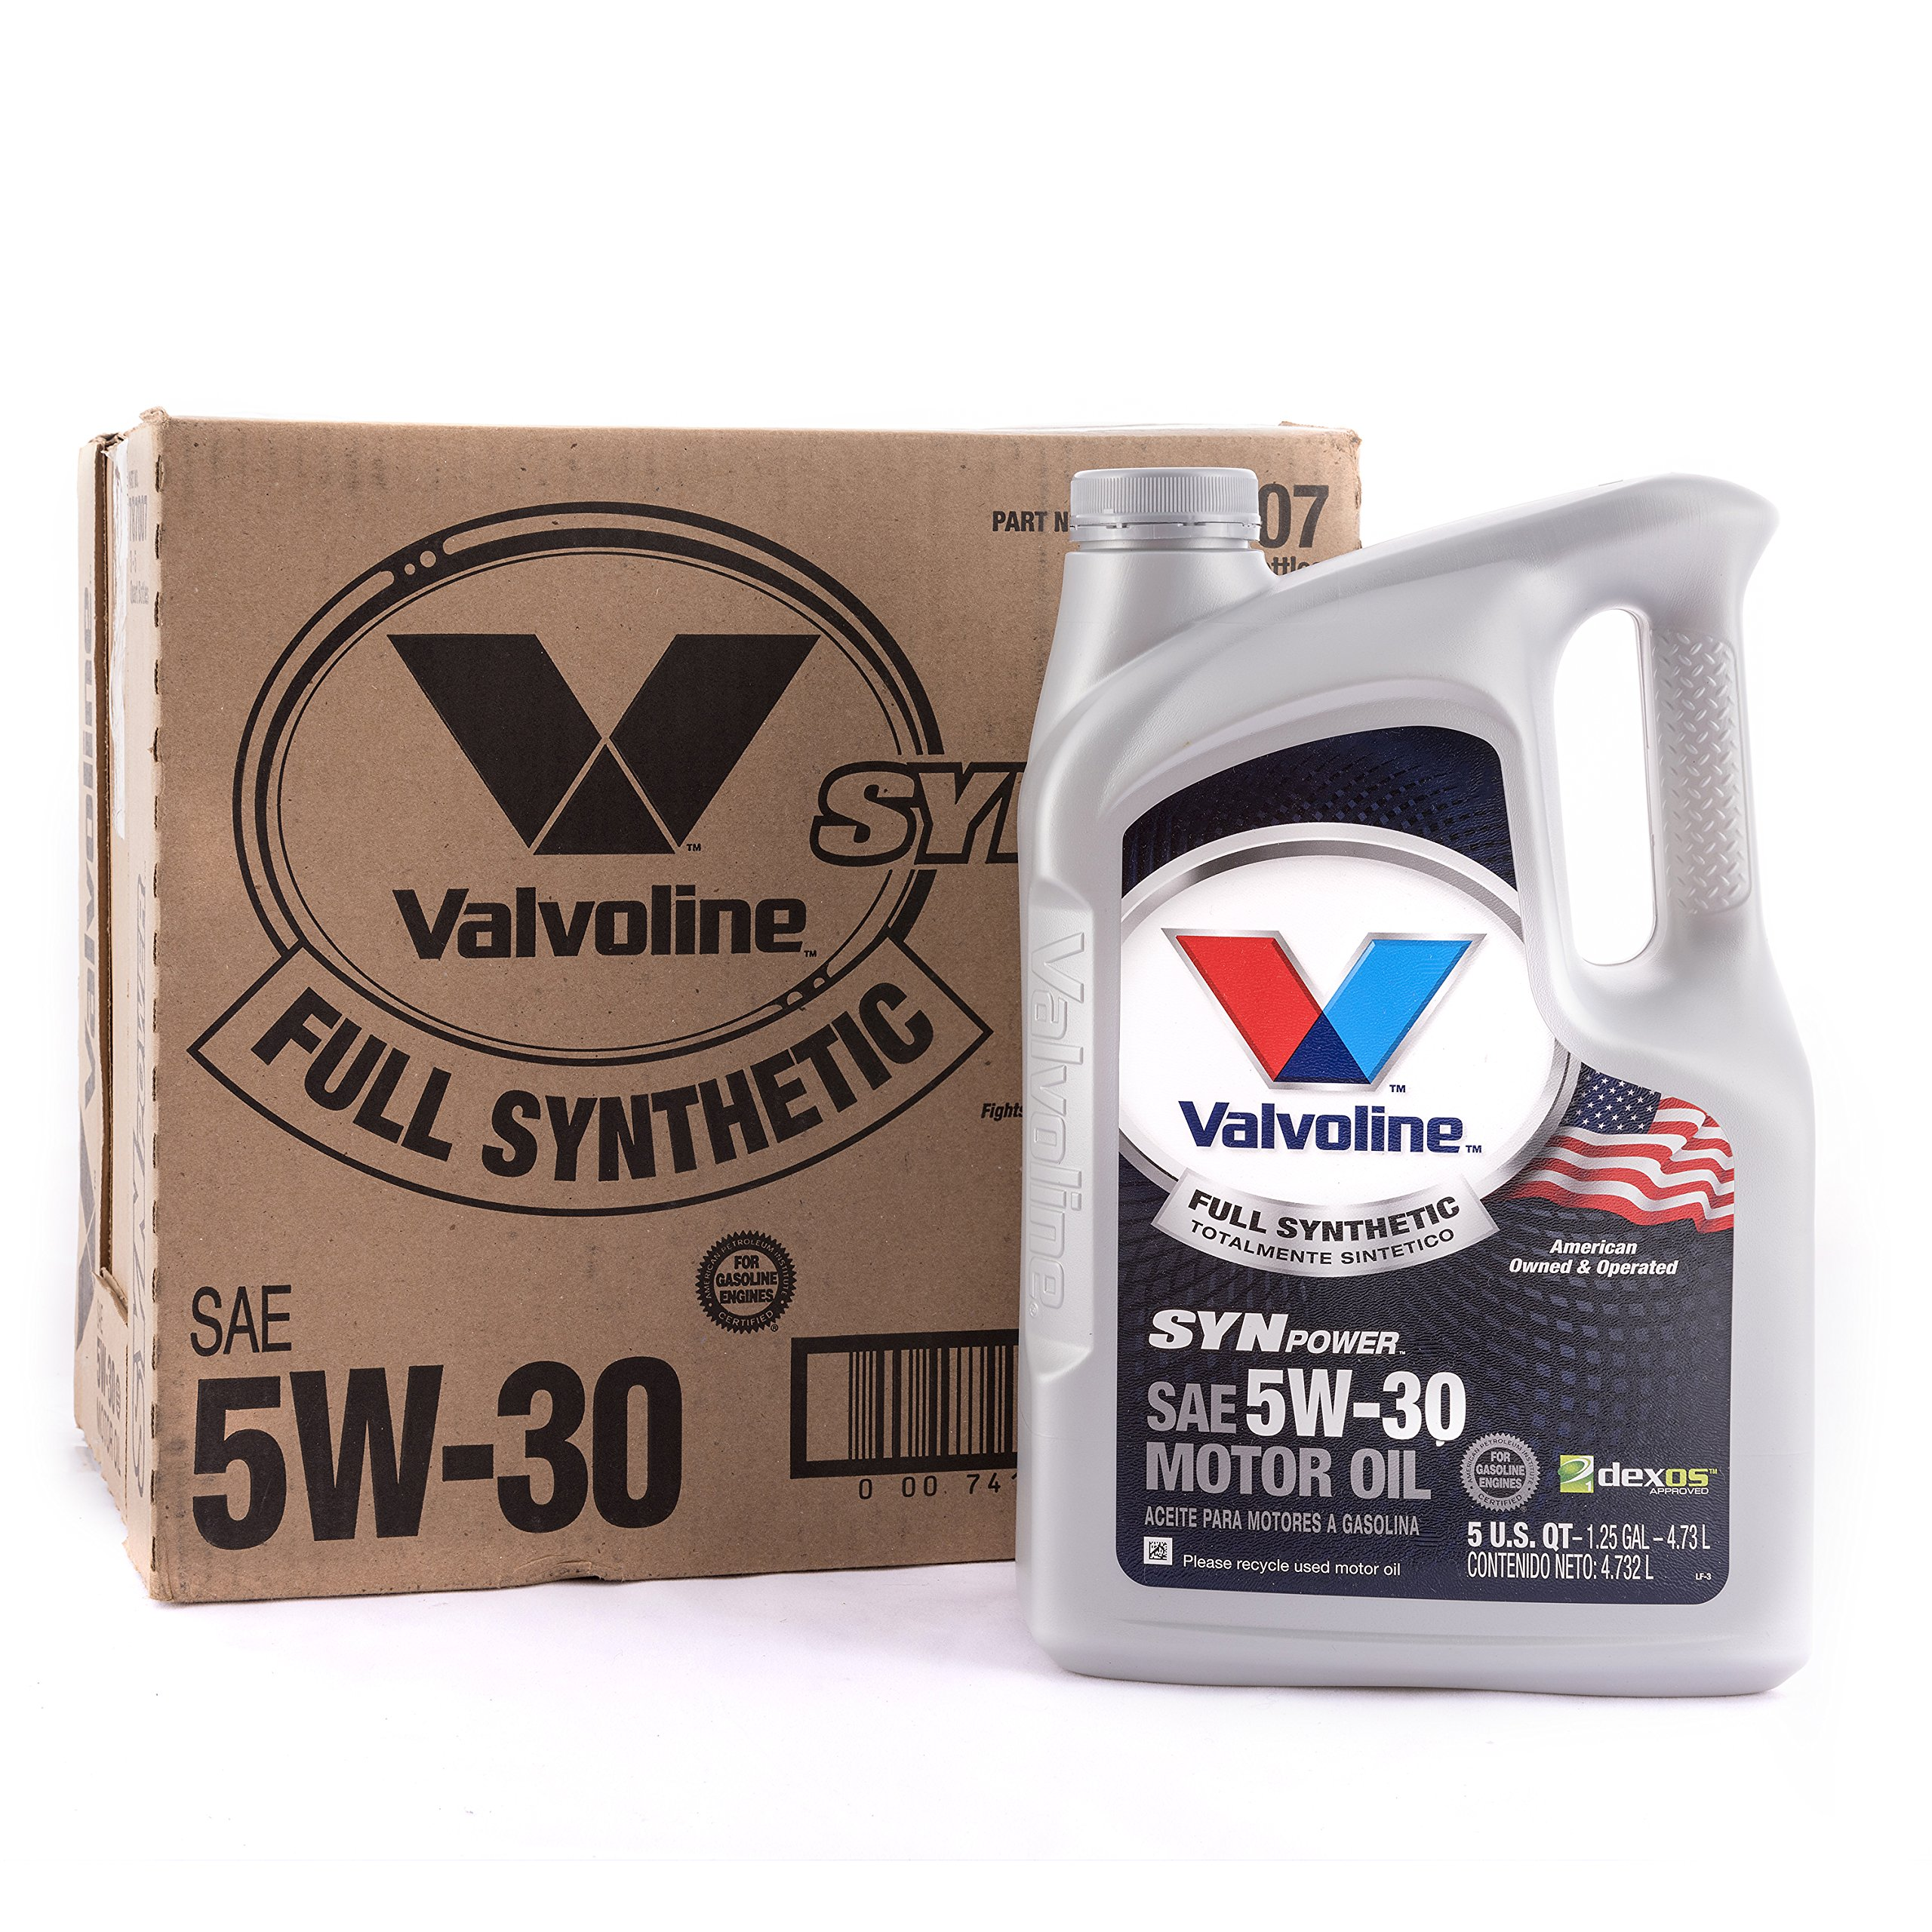 Valvoline 5W-30 SynPower Full Synthetic Motor Oil - 5qt (Case of 3) (787007-3PK) by Valvoline